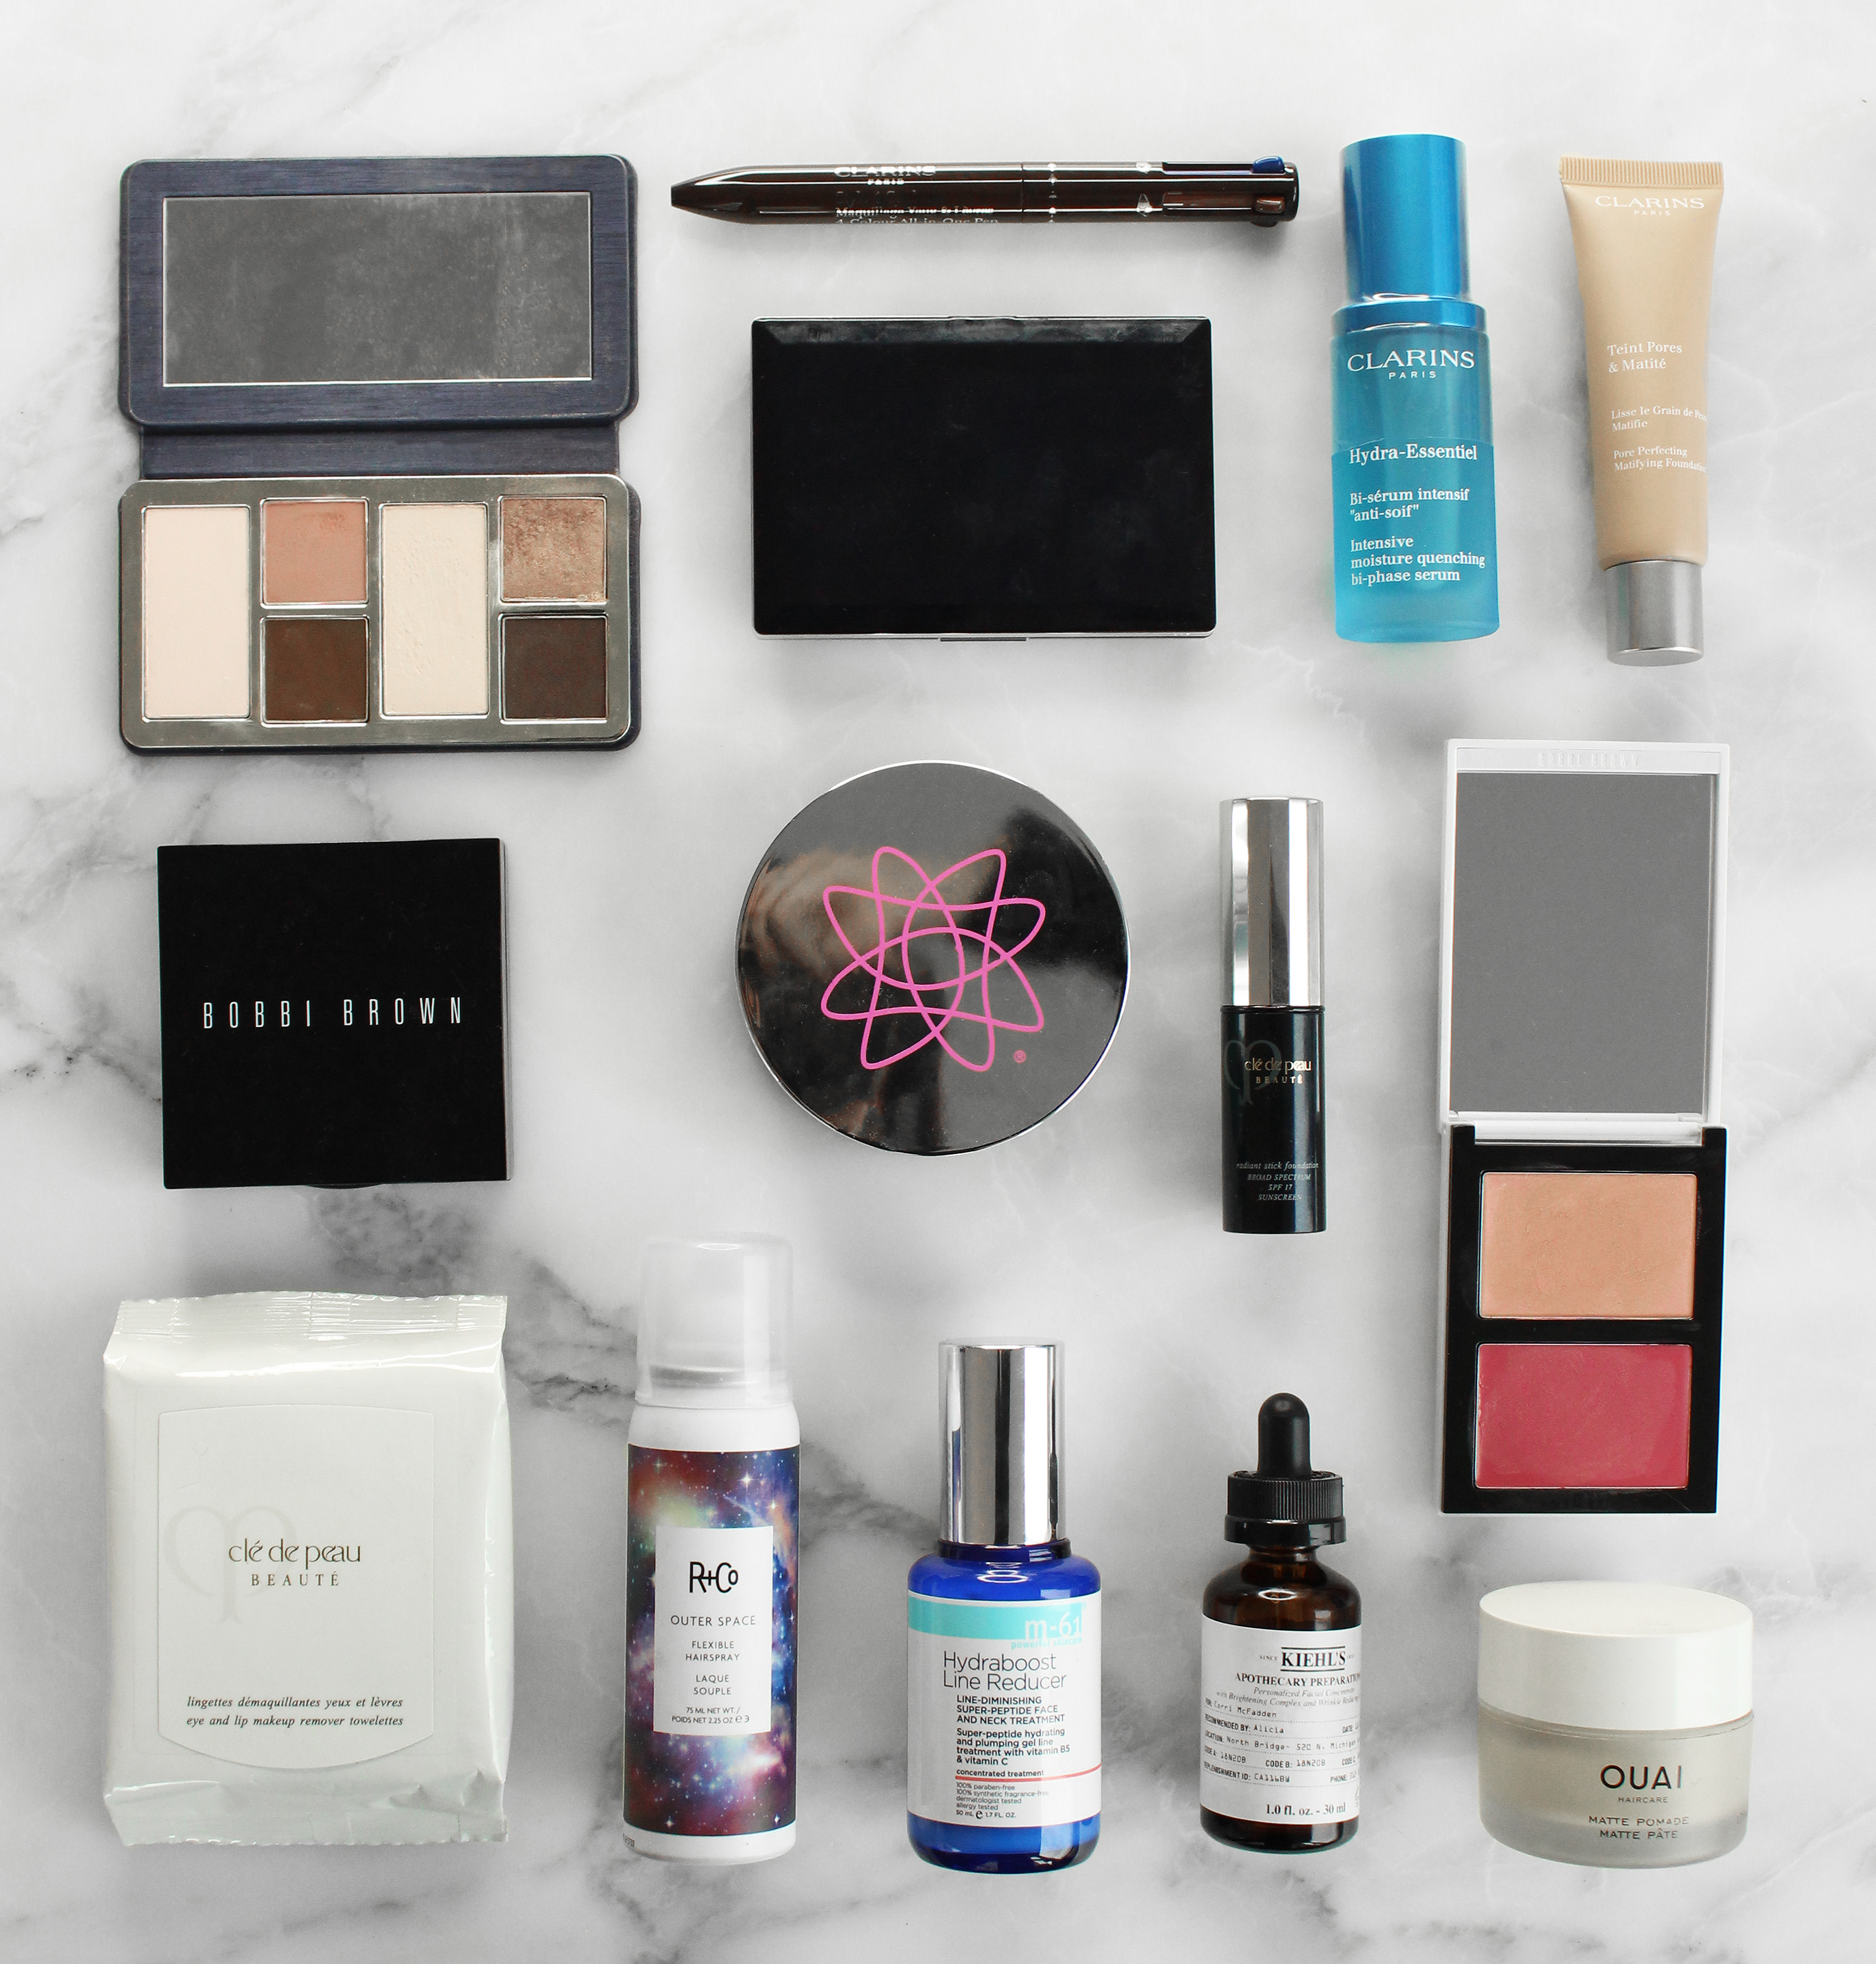 The best department store beauty buys from Corri McFadden.